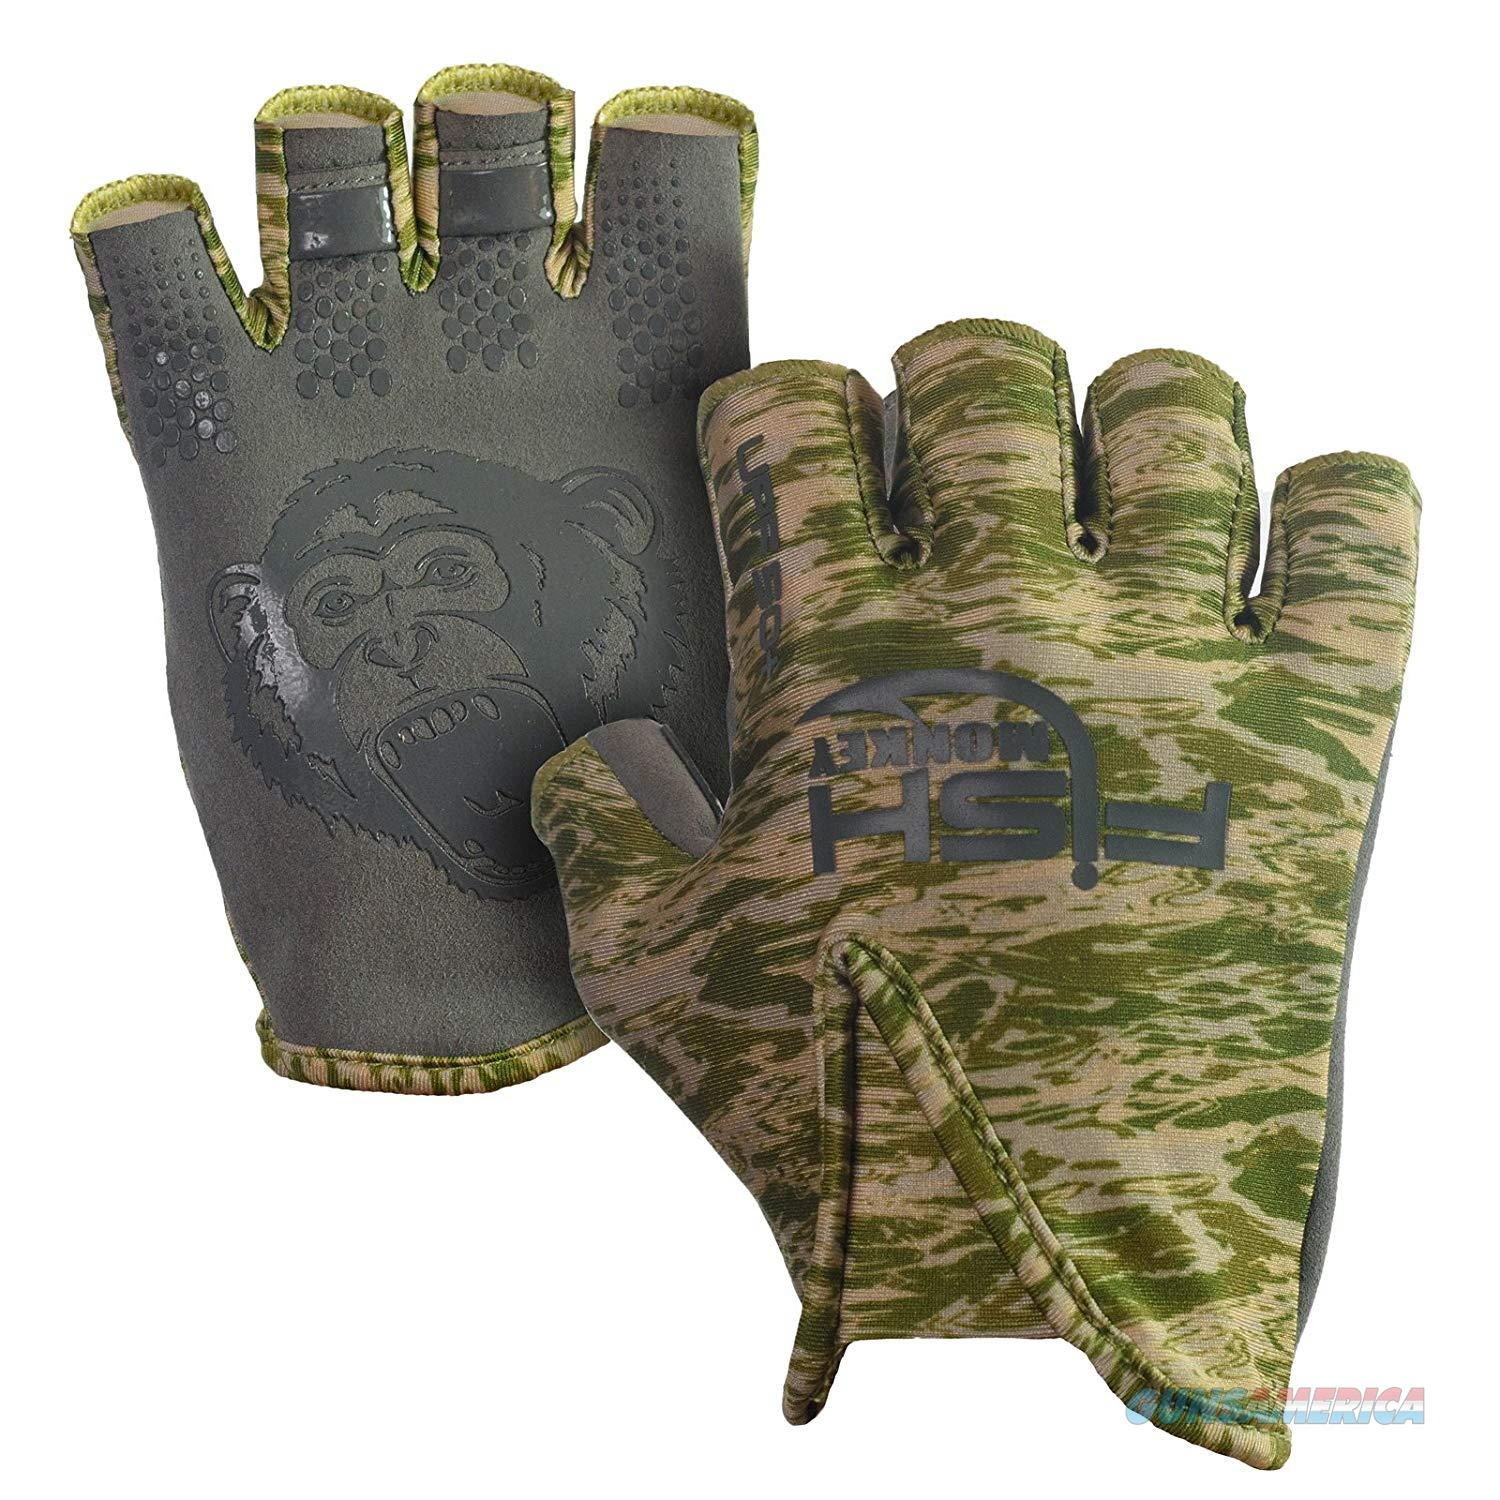 Fish Monkey Stubby Guide Glove Green XL  Non-Guns > Hunting Clothing and Equipment > Clothing > Gloves